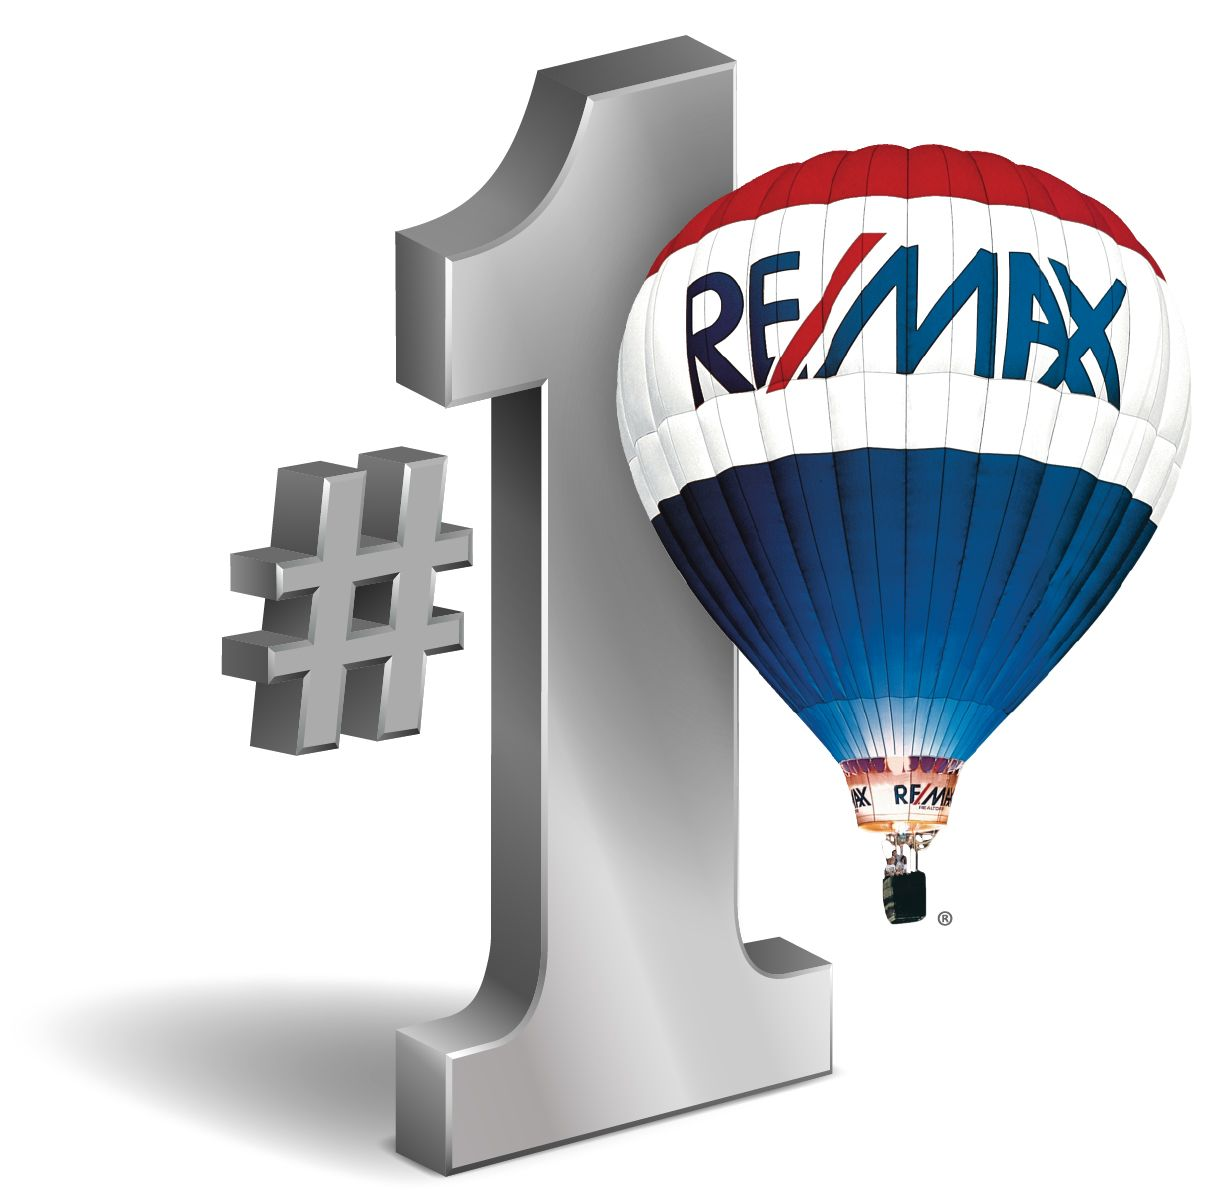 Re Max The Bly Team In League City Tx Remax Remax Real Estate